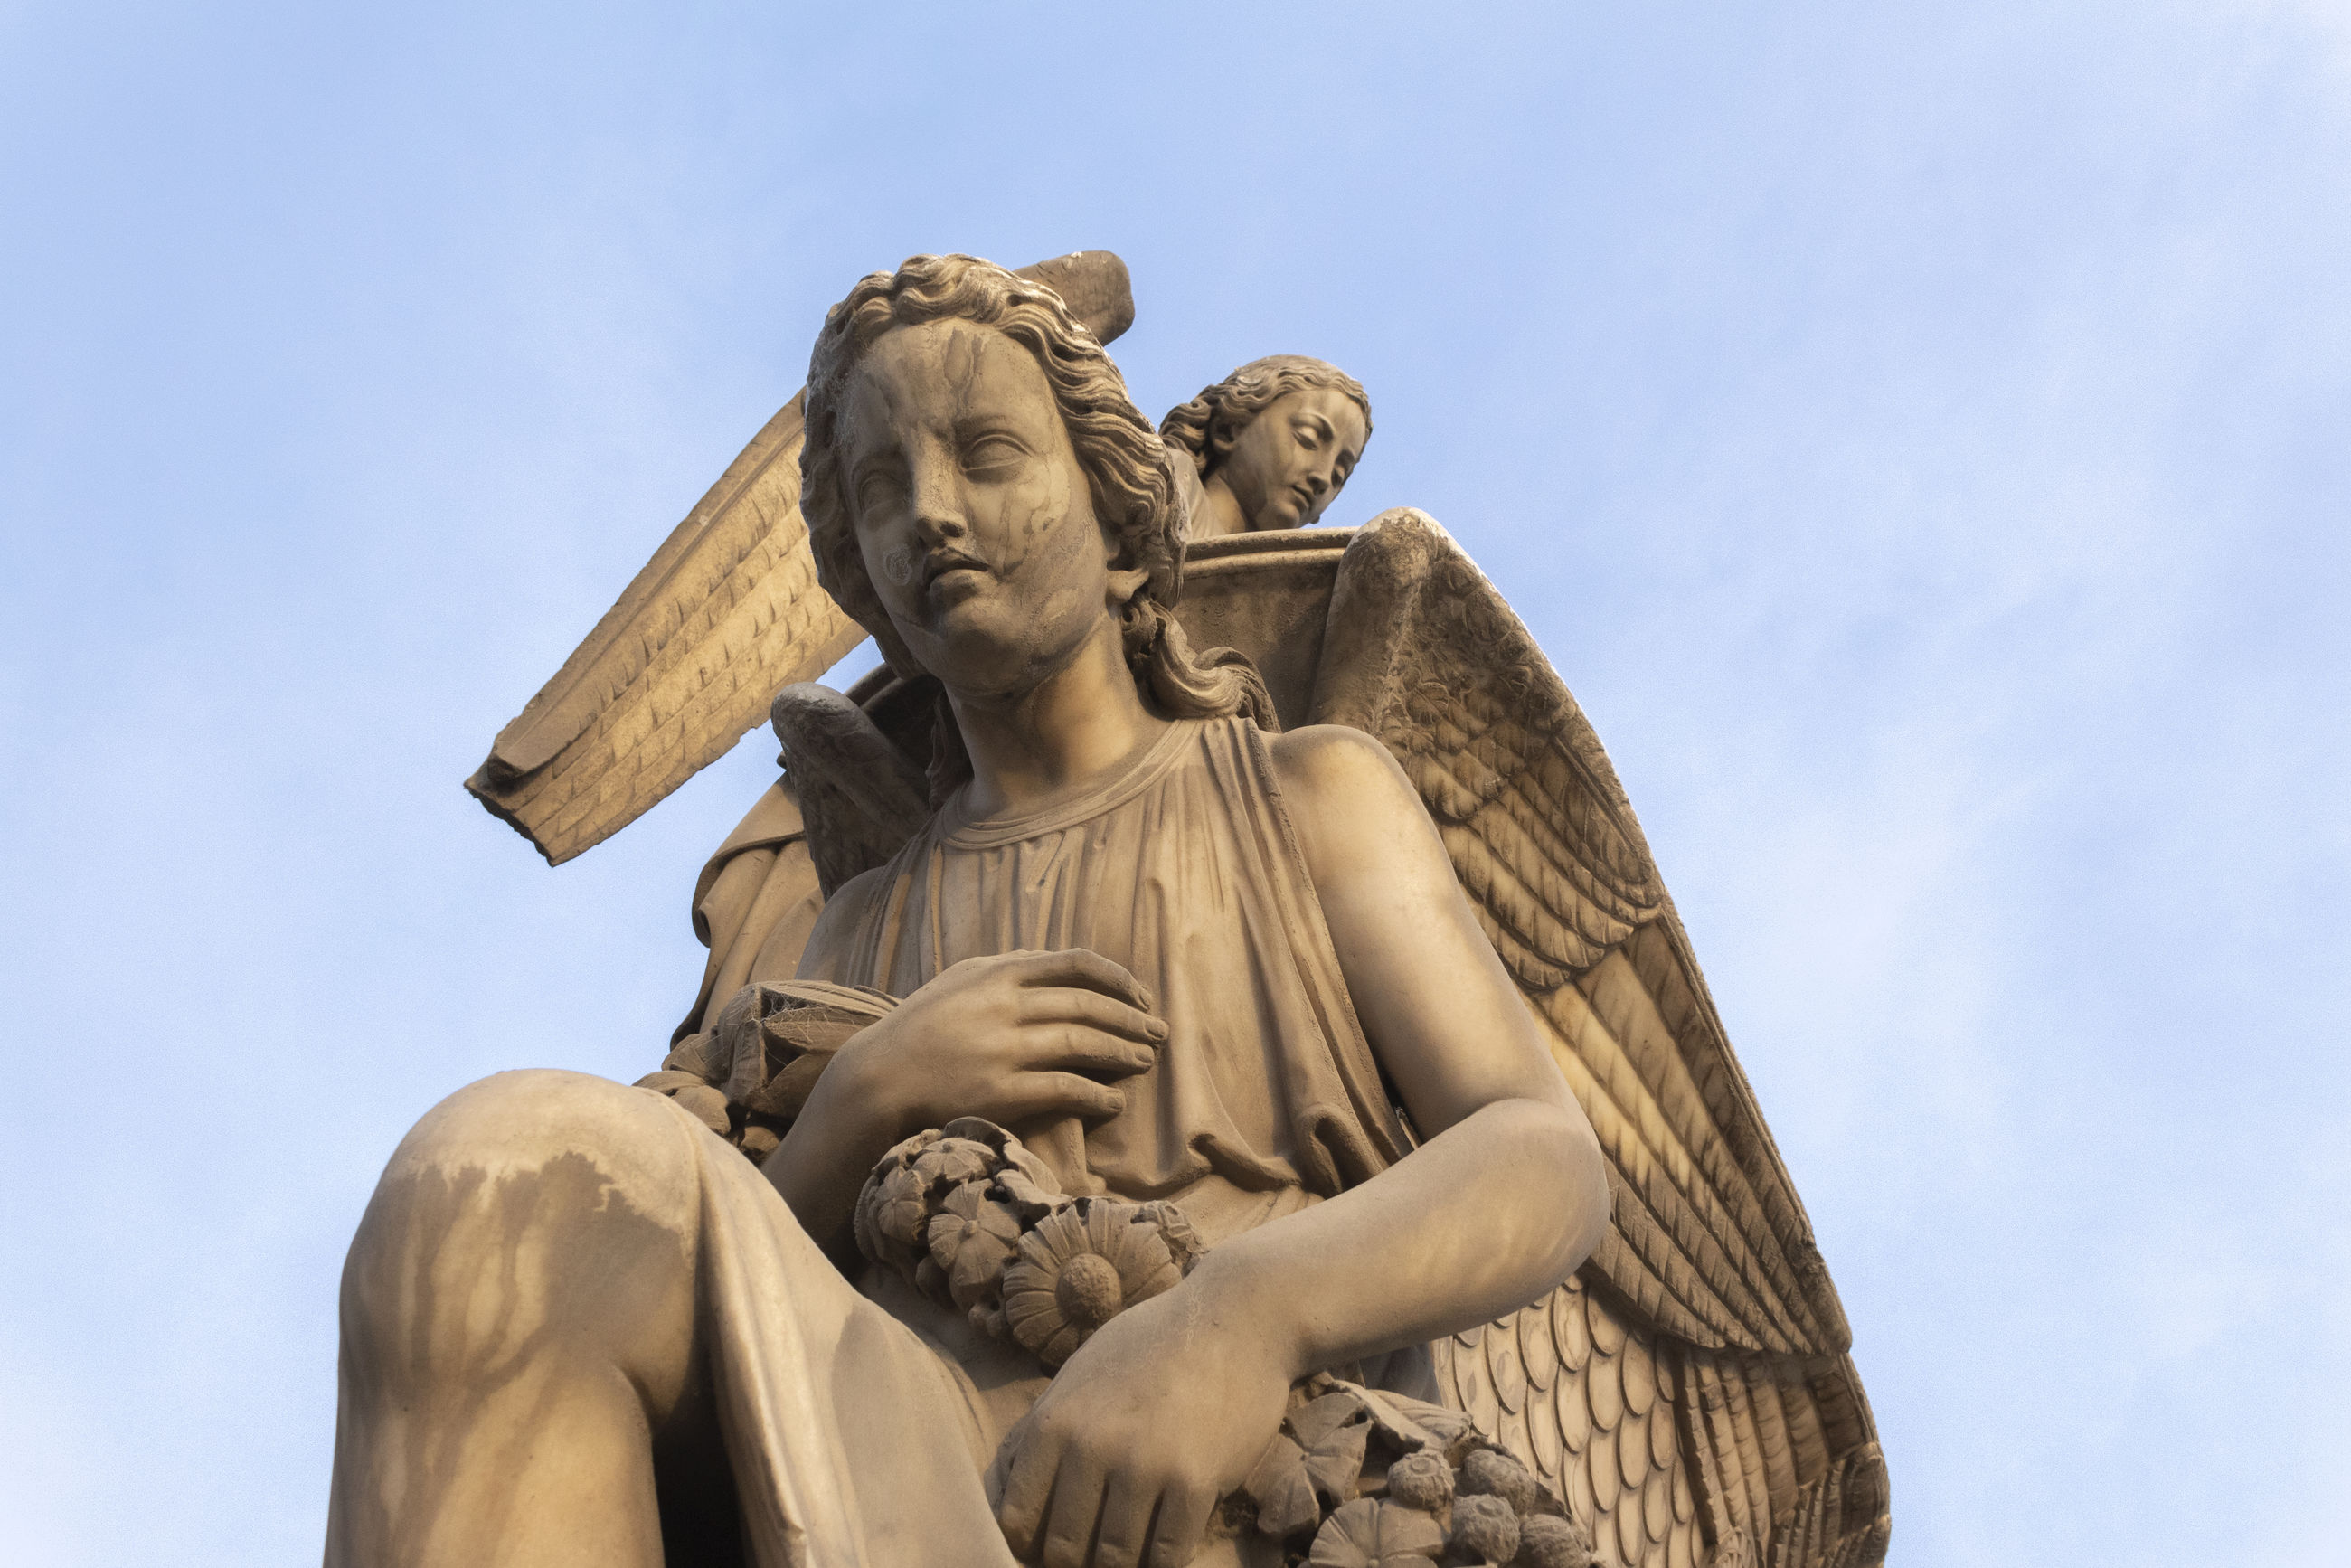 sculpture, statue, representation, low angle view, art and craft, human representation, sky, male likeness, creativity, day, nature, no people, architecture, religion, craft, blue, outdoors, female likeness, belief, angel